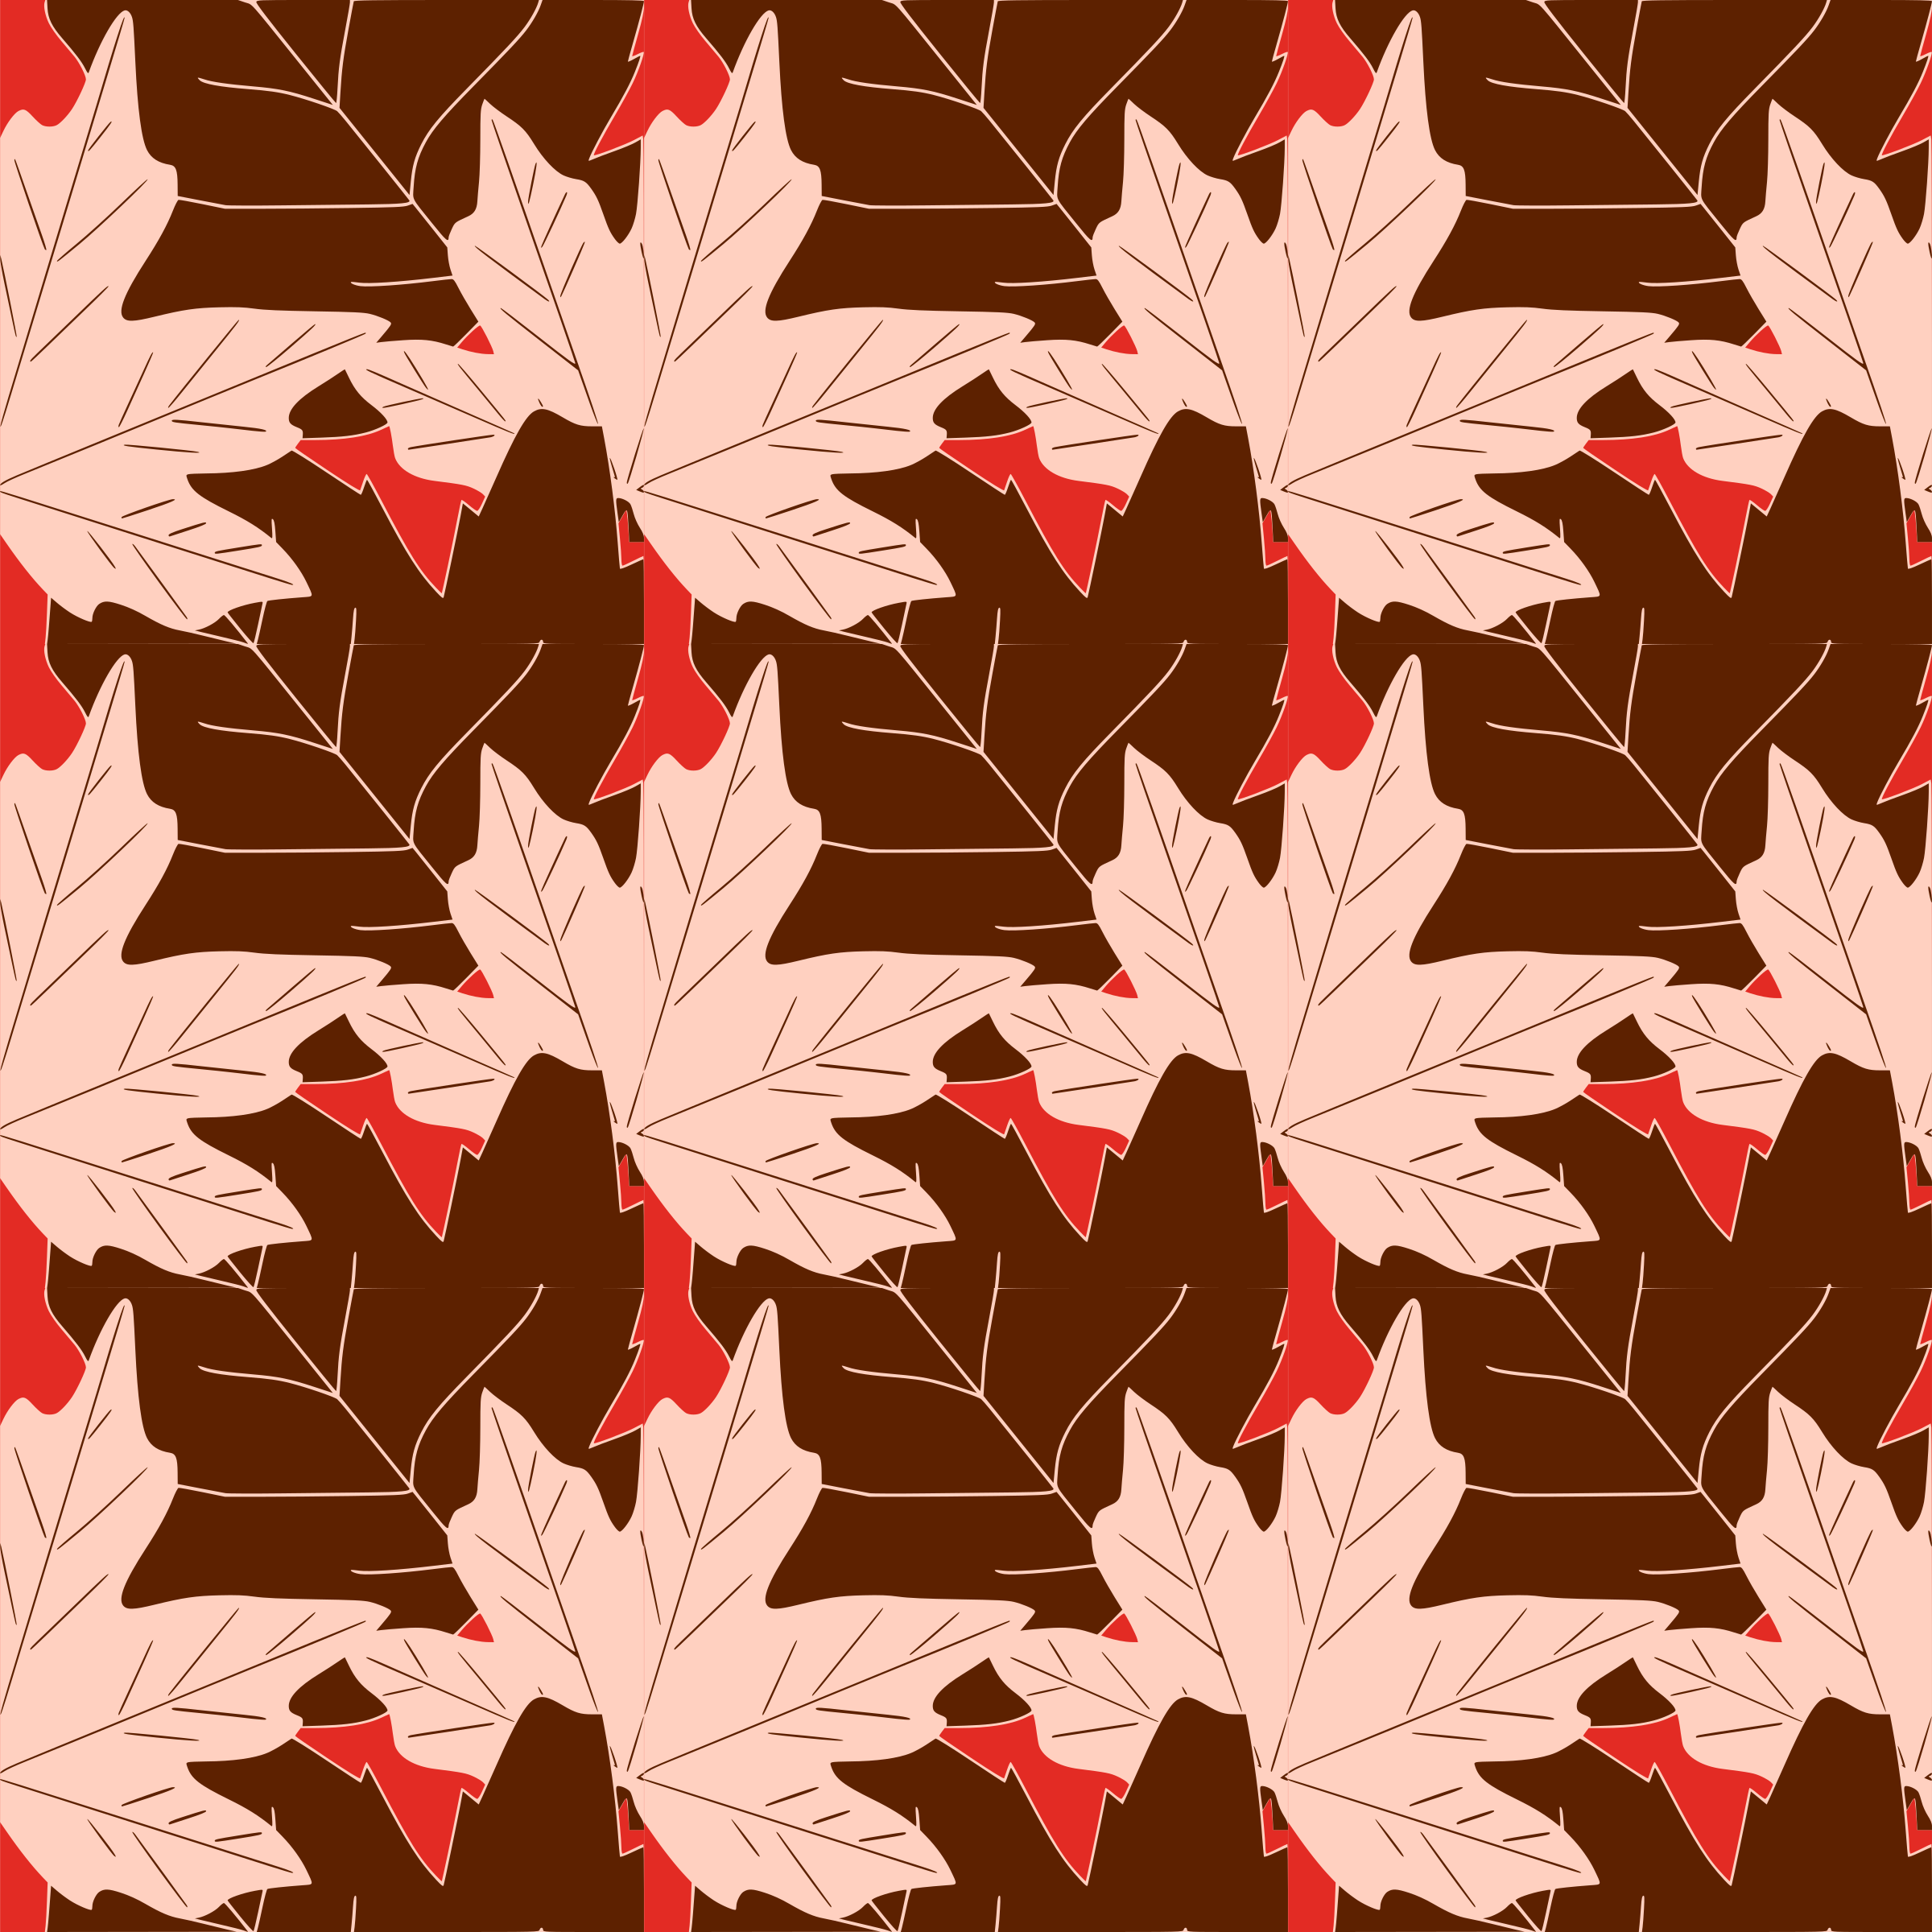 Autumn leaves -seamless pattern by yamachem